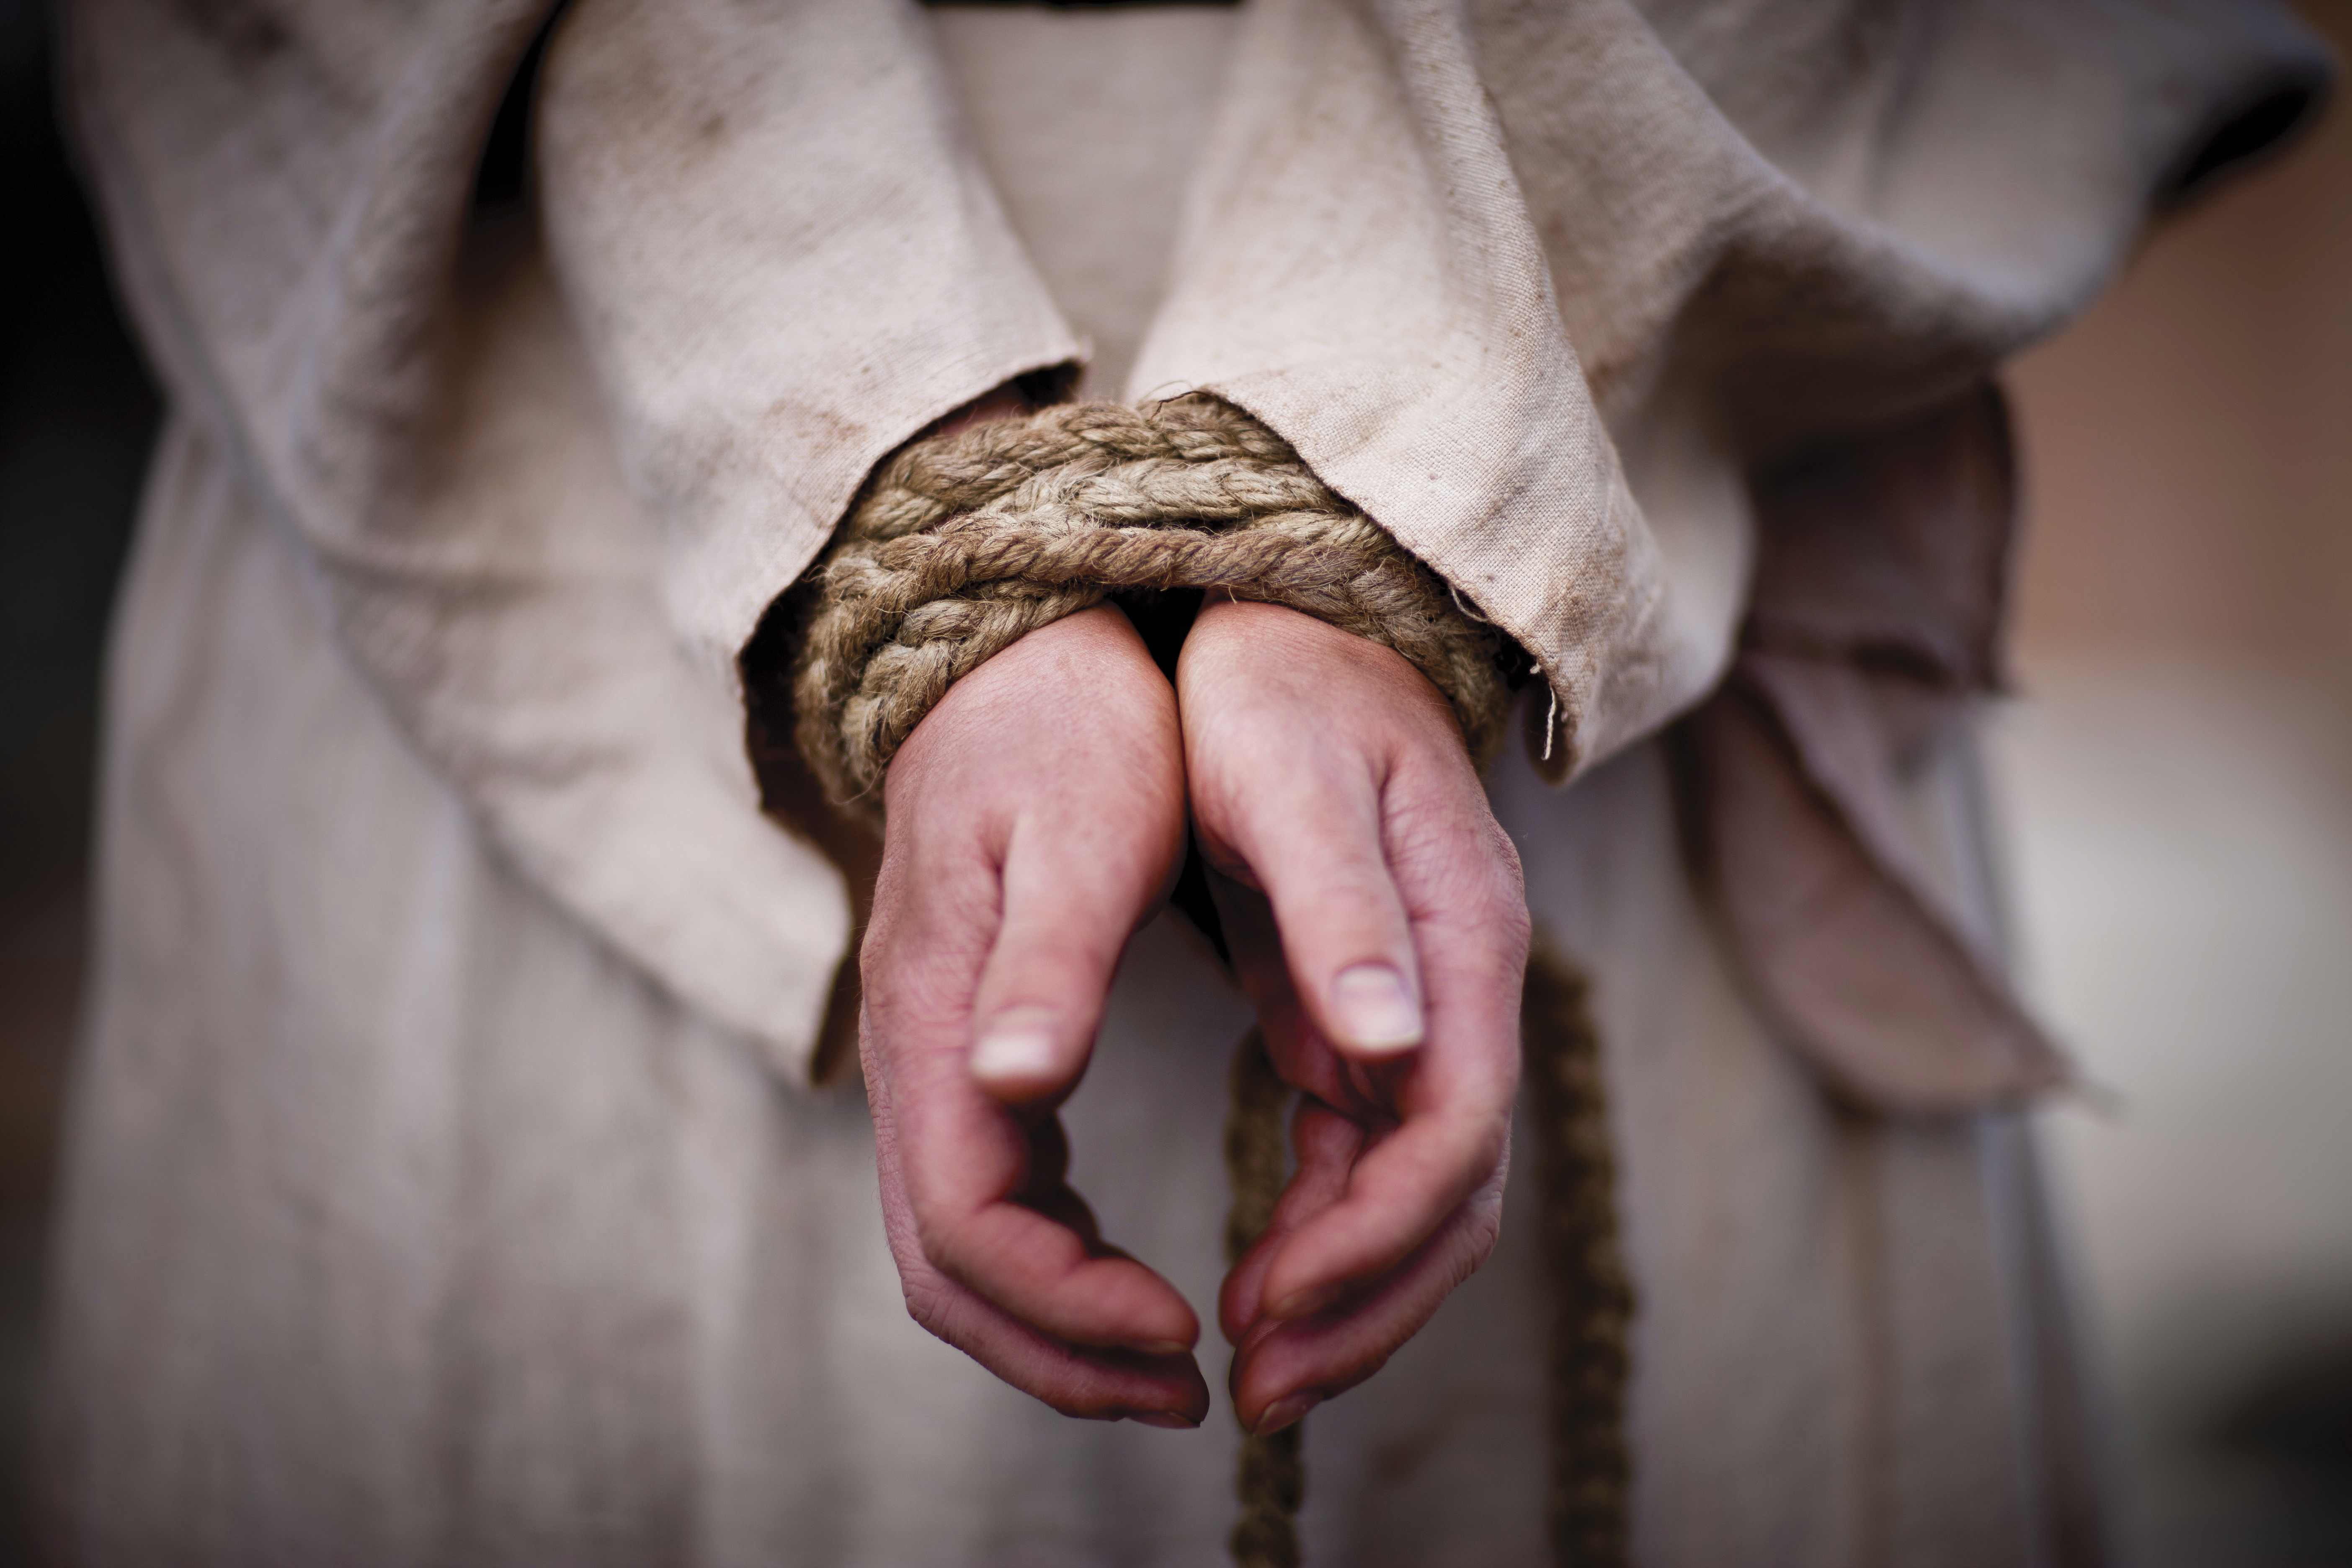 Christ's hands after being tied together with a rope.